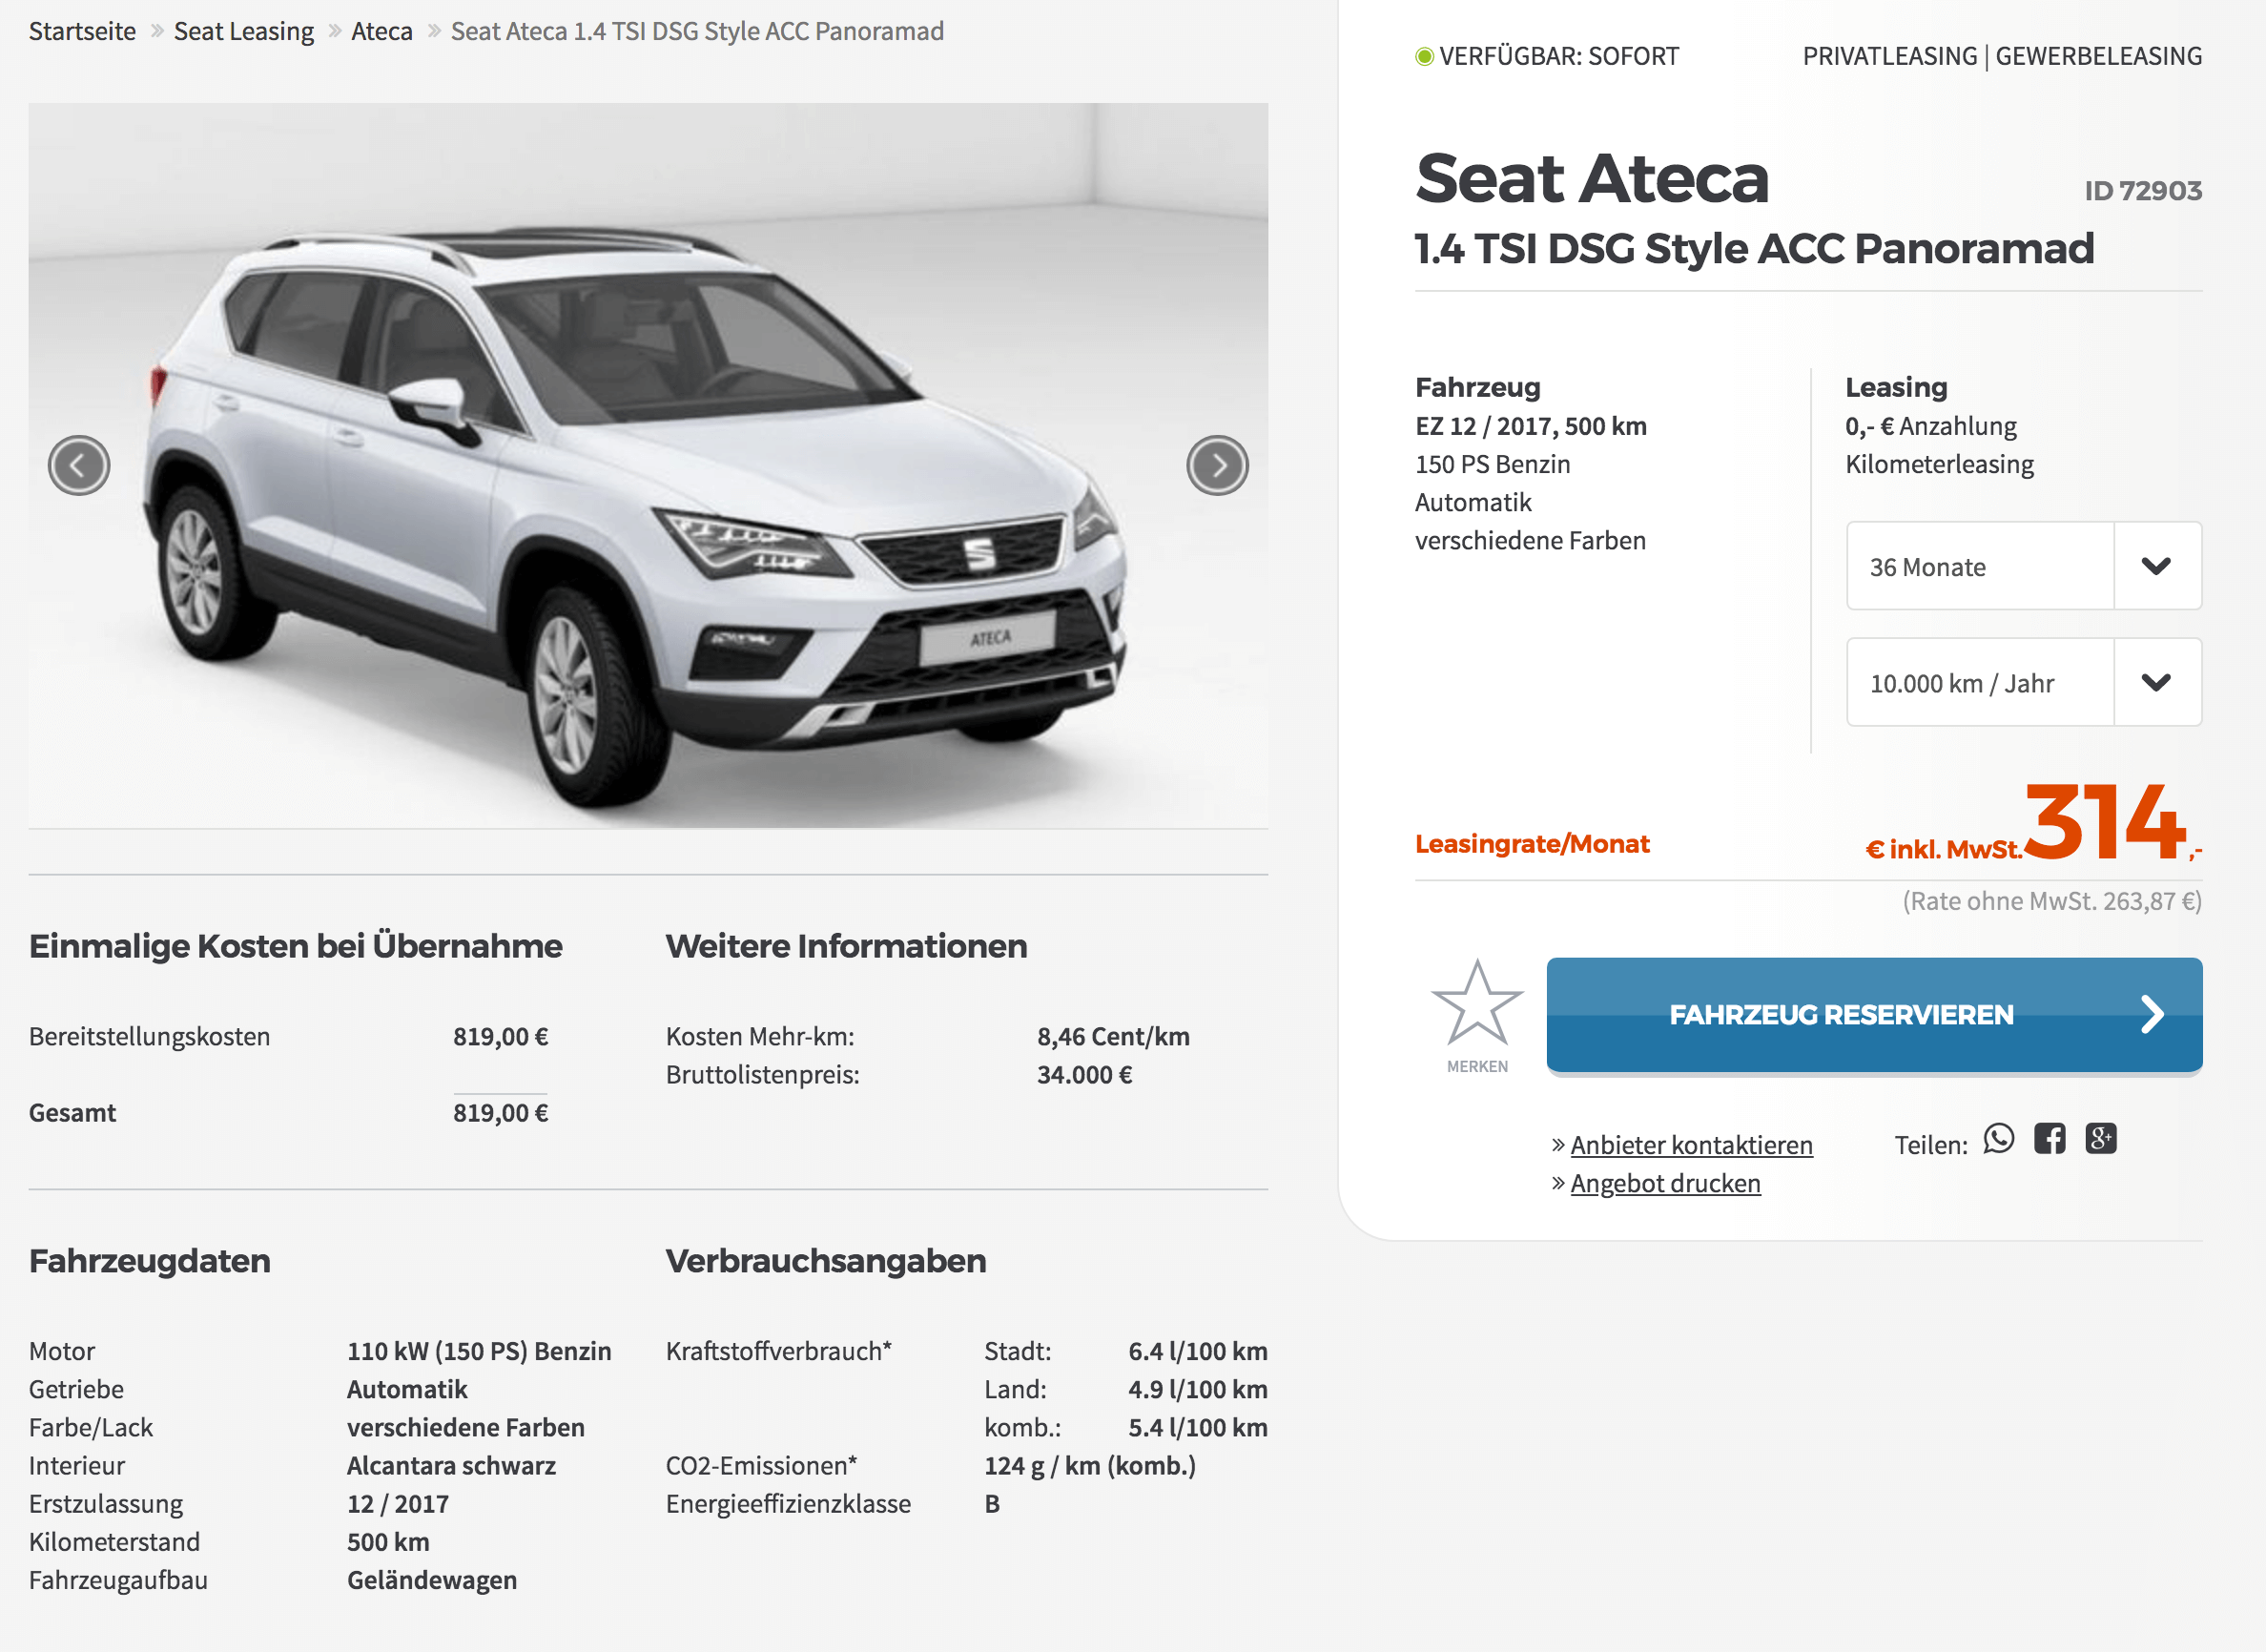 seat ateca leasing f r 314 euro im monat brutto. Black Bedroom Furniture Sets. Home Design Ideas